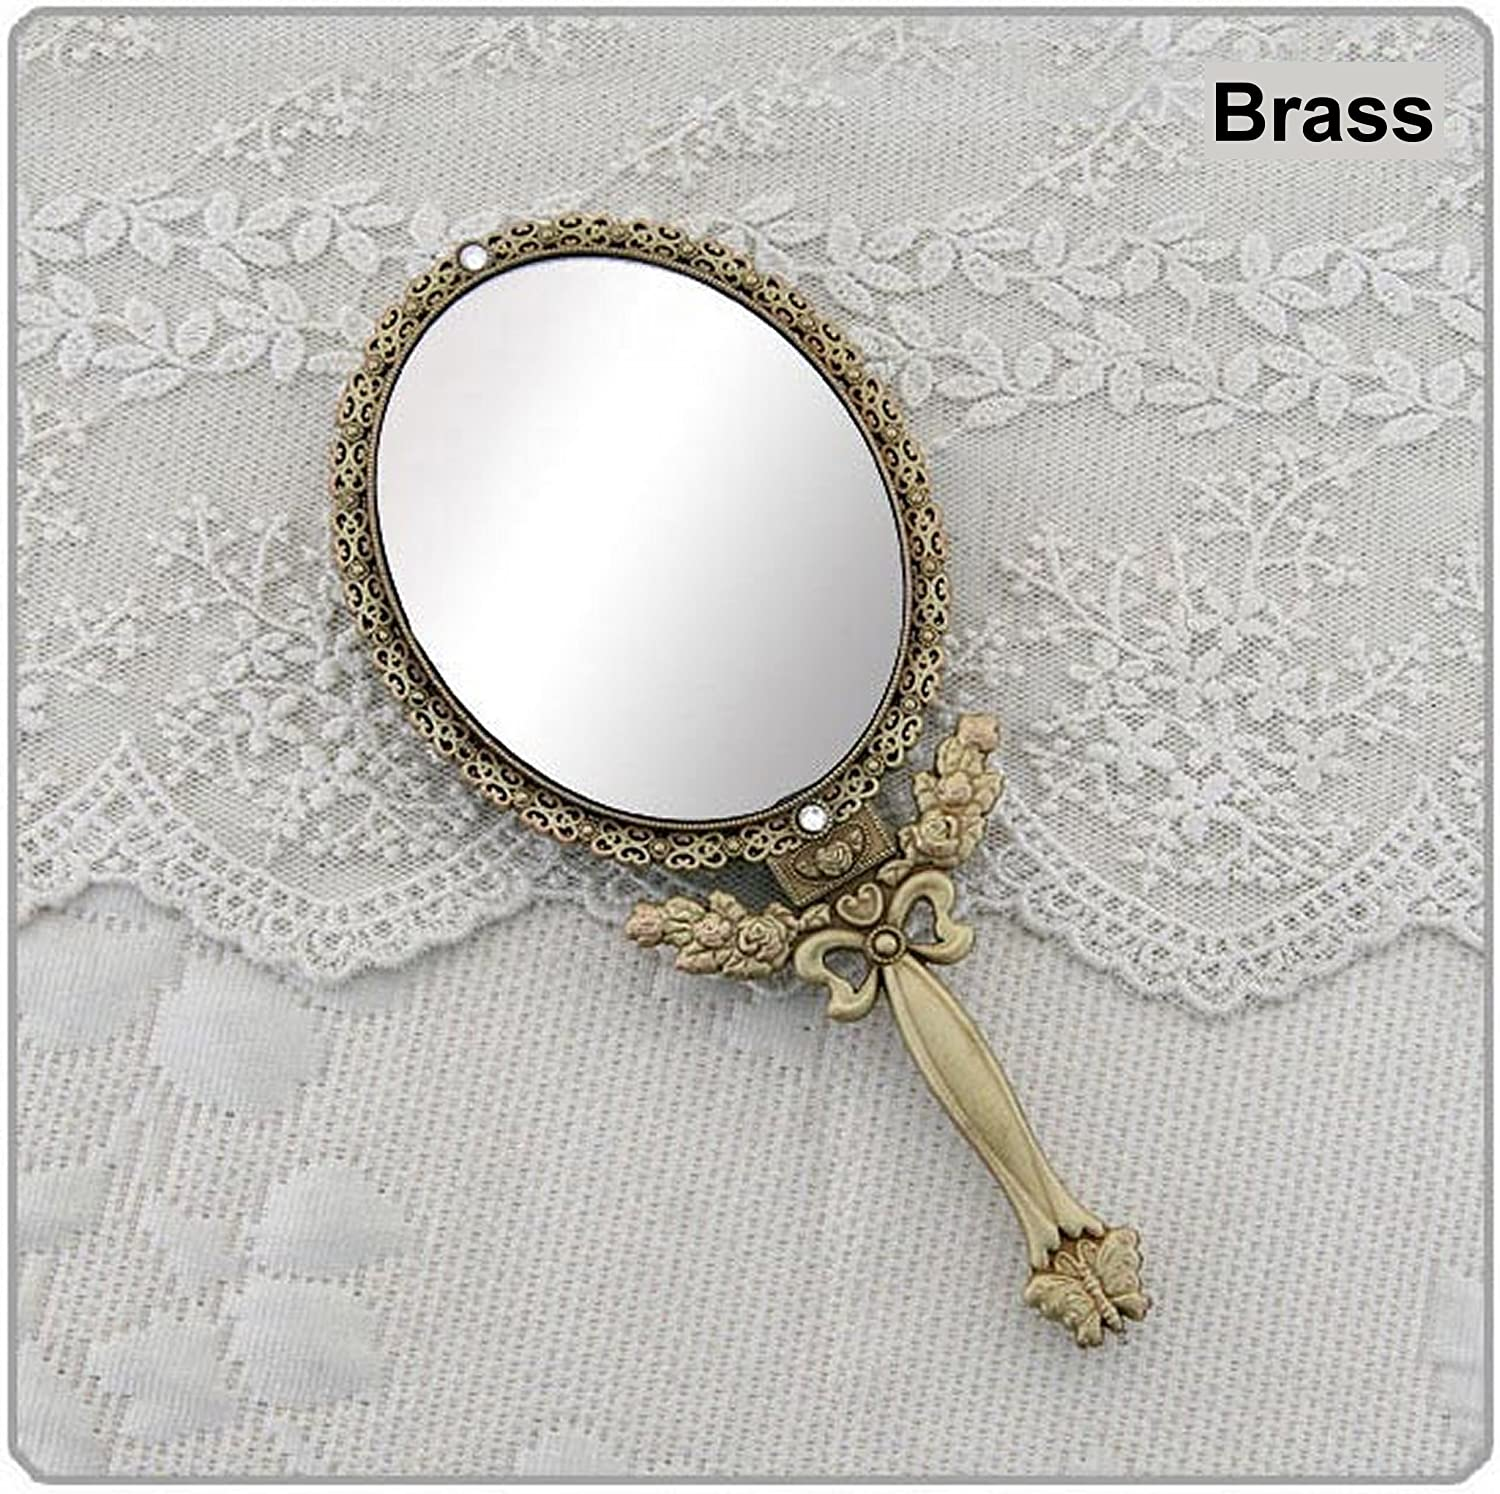 Butterfly Designed Double Sided Magnification Hand Held Makeup Metal Mirror Folding Handle Stand Travel Mirror Large, Brass